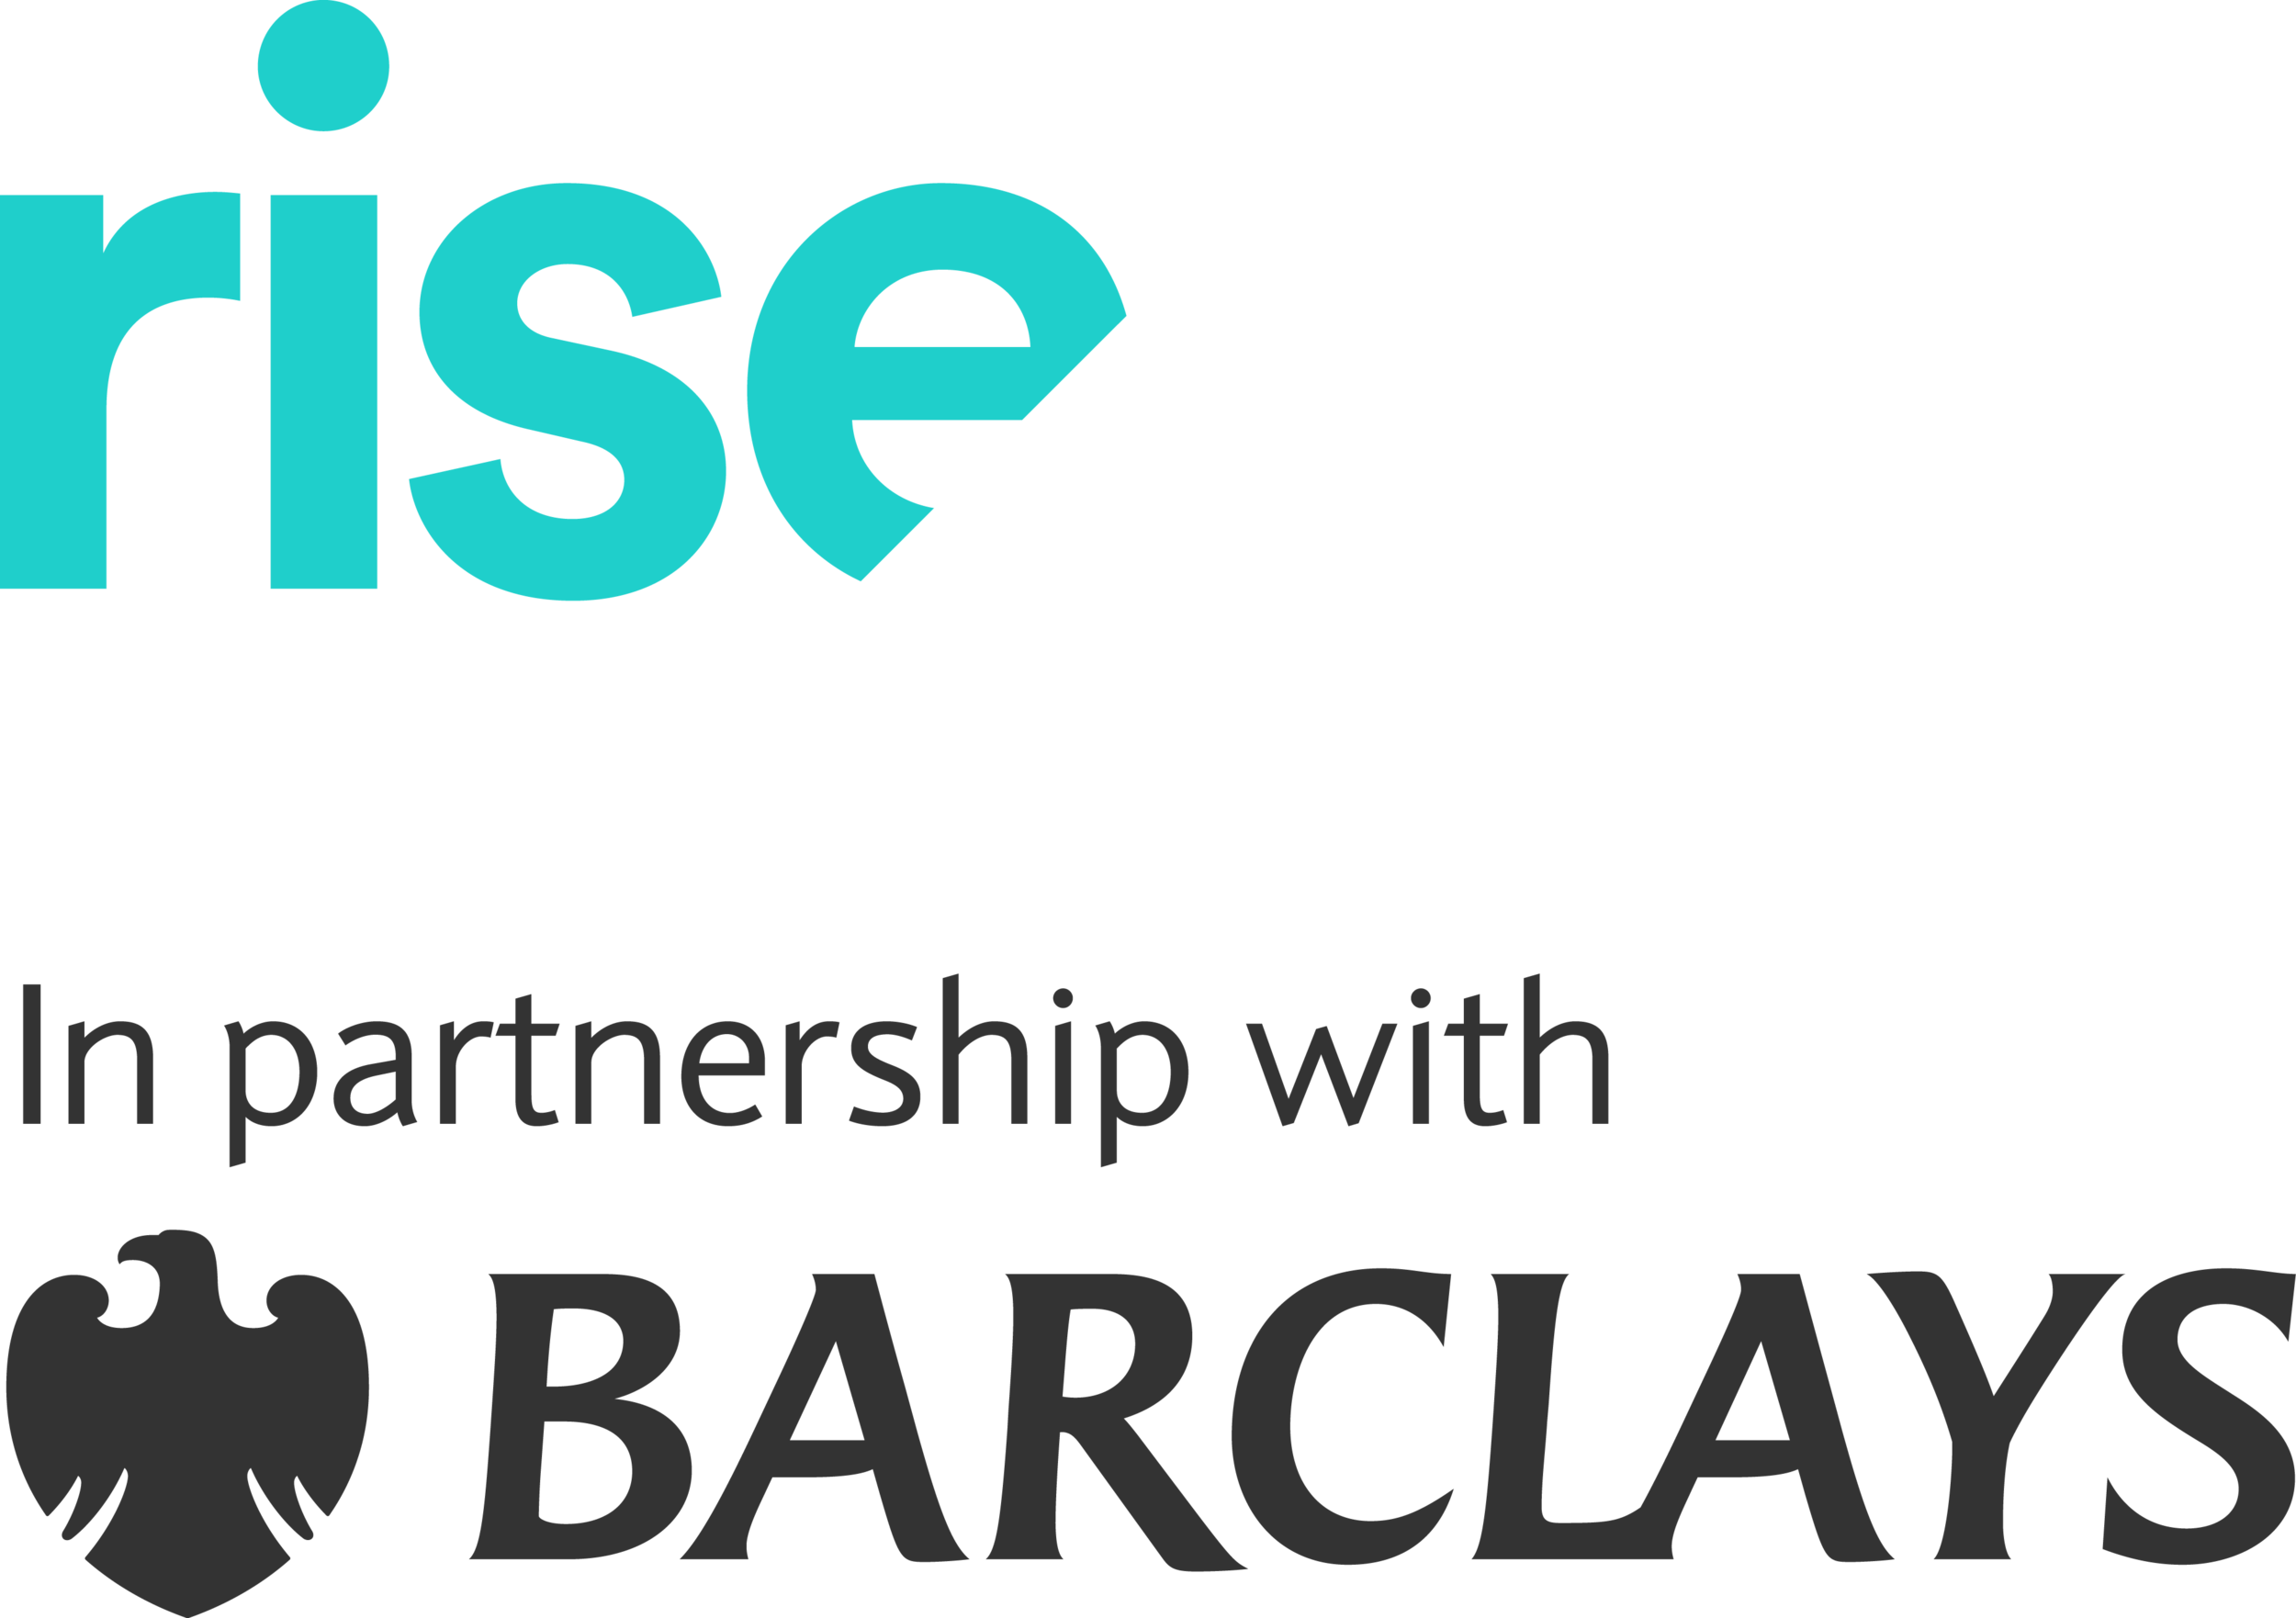 Rise__in_partnership_with_Barclays_logo.png.png